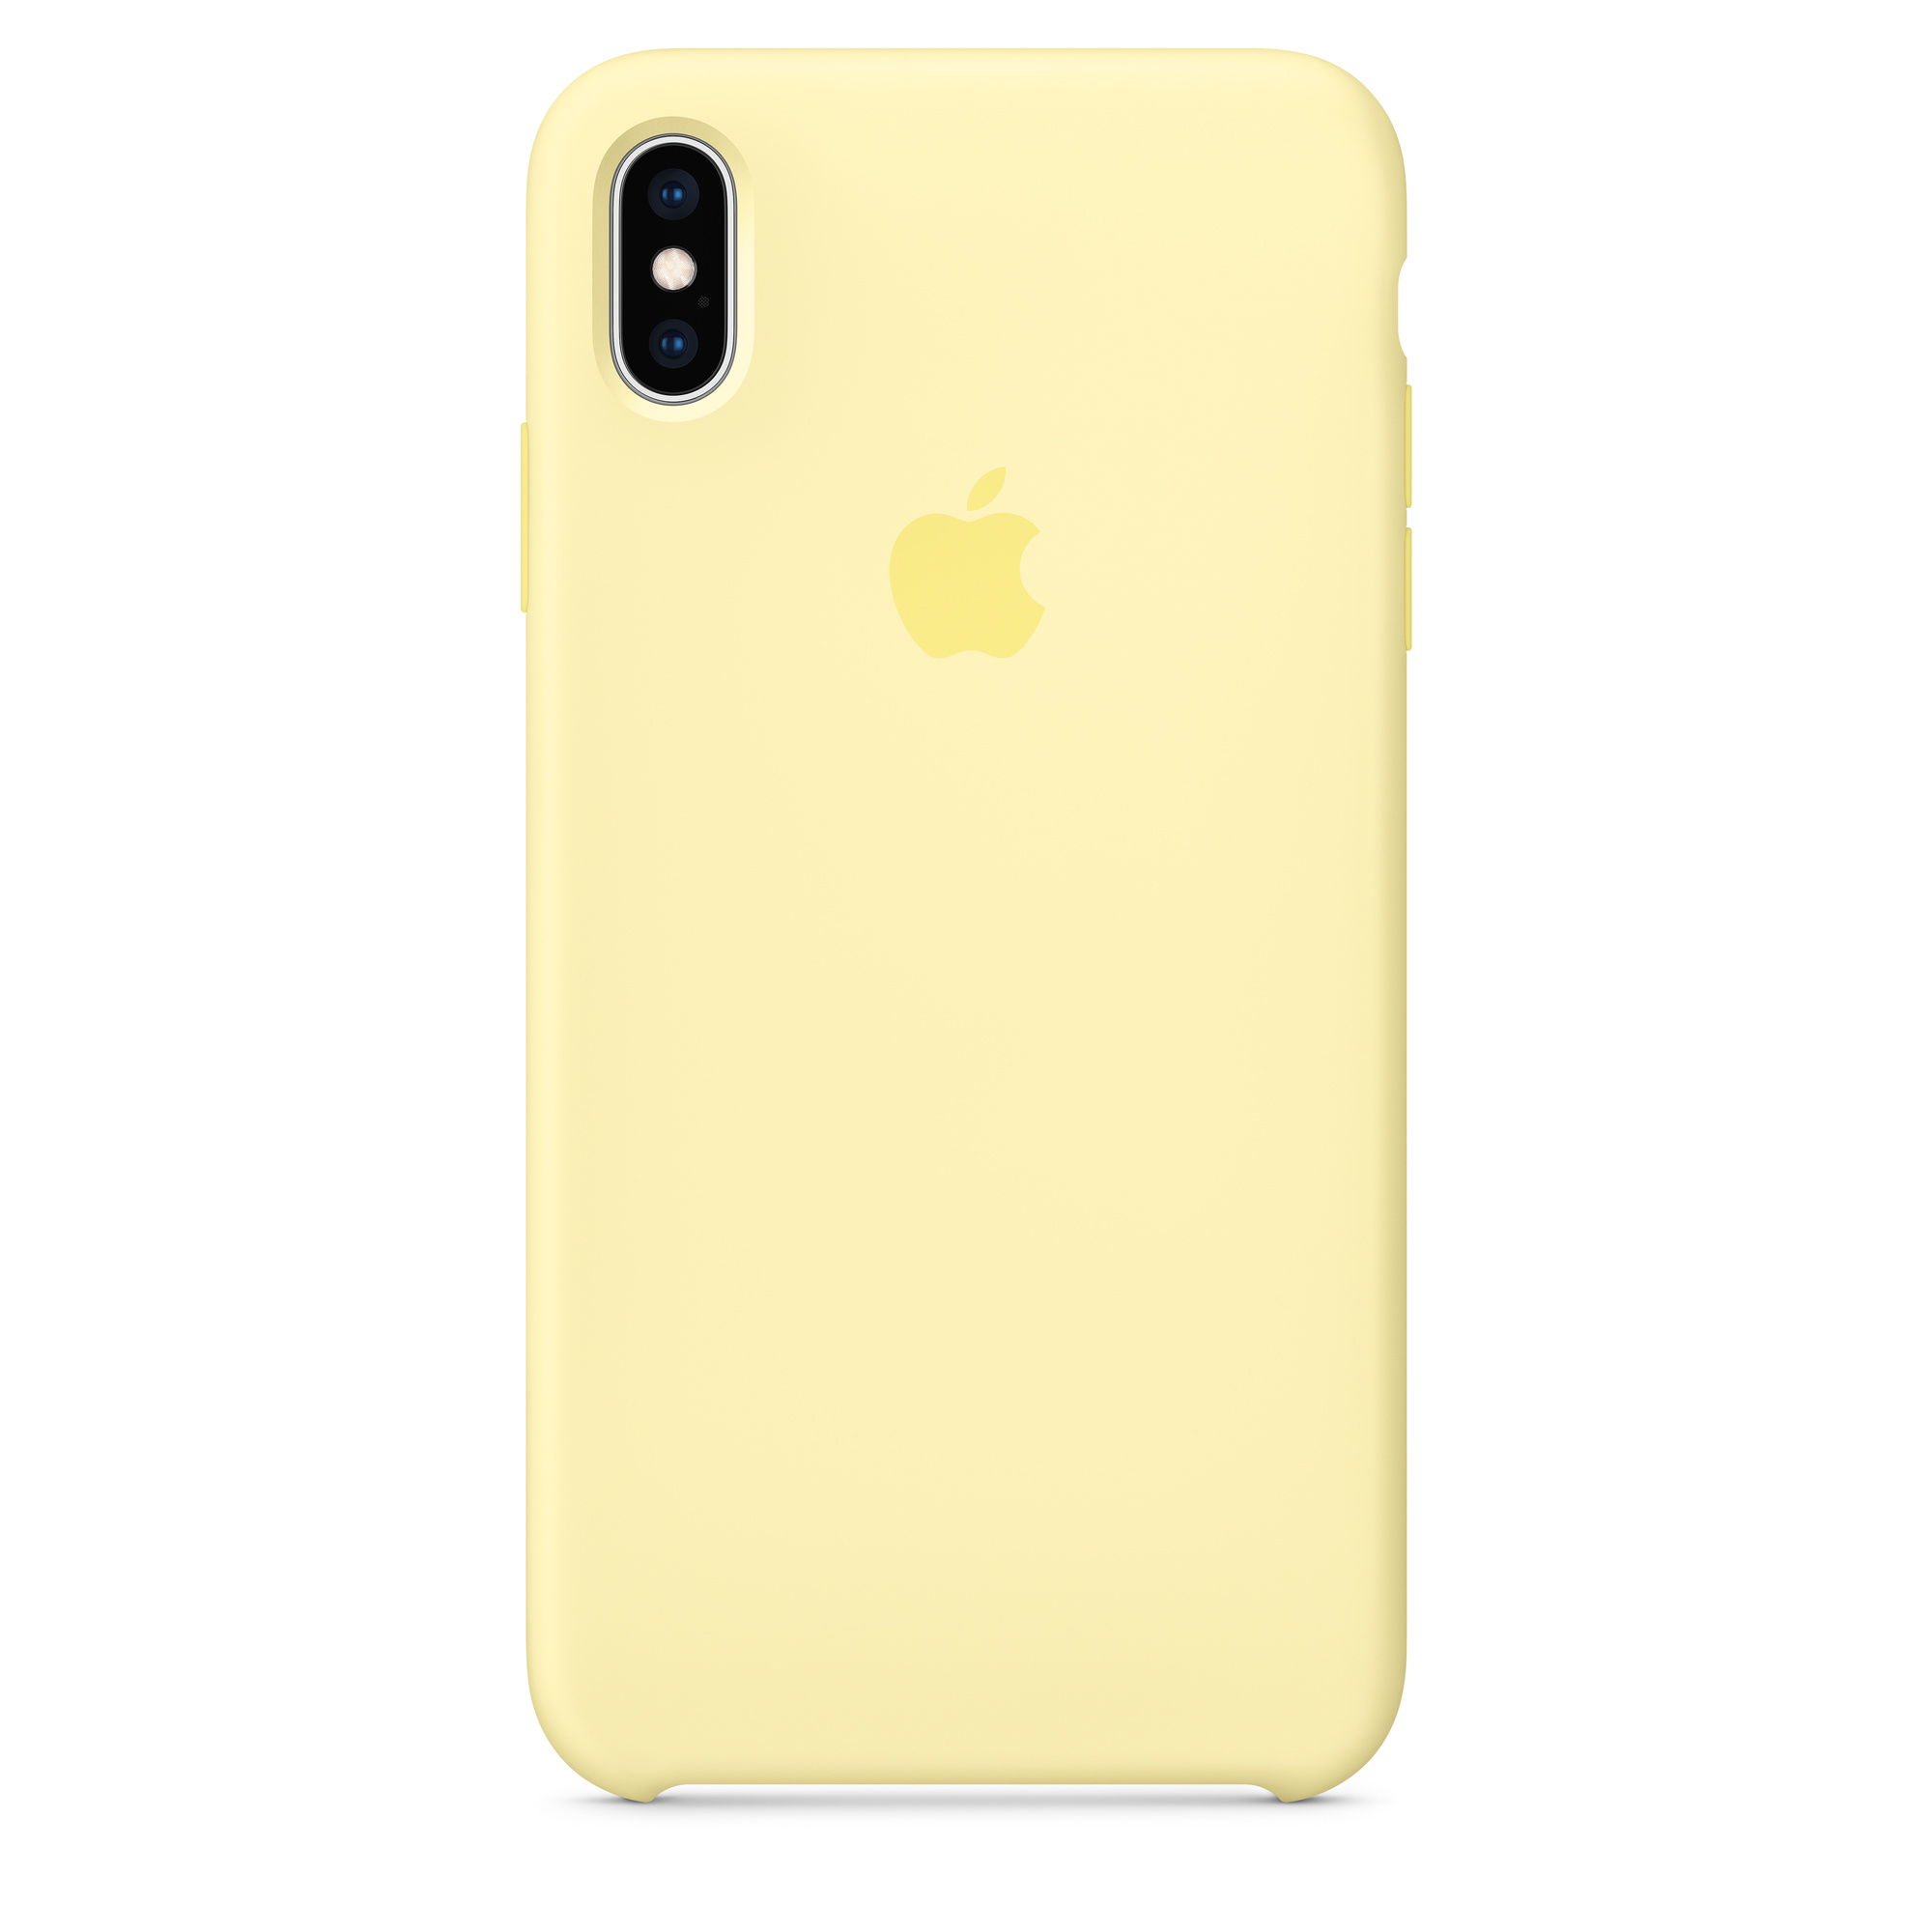 timeless design 74285 518af iPhone XS Max Silicone Case - Mellow Yellow